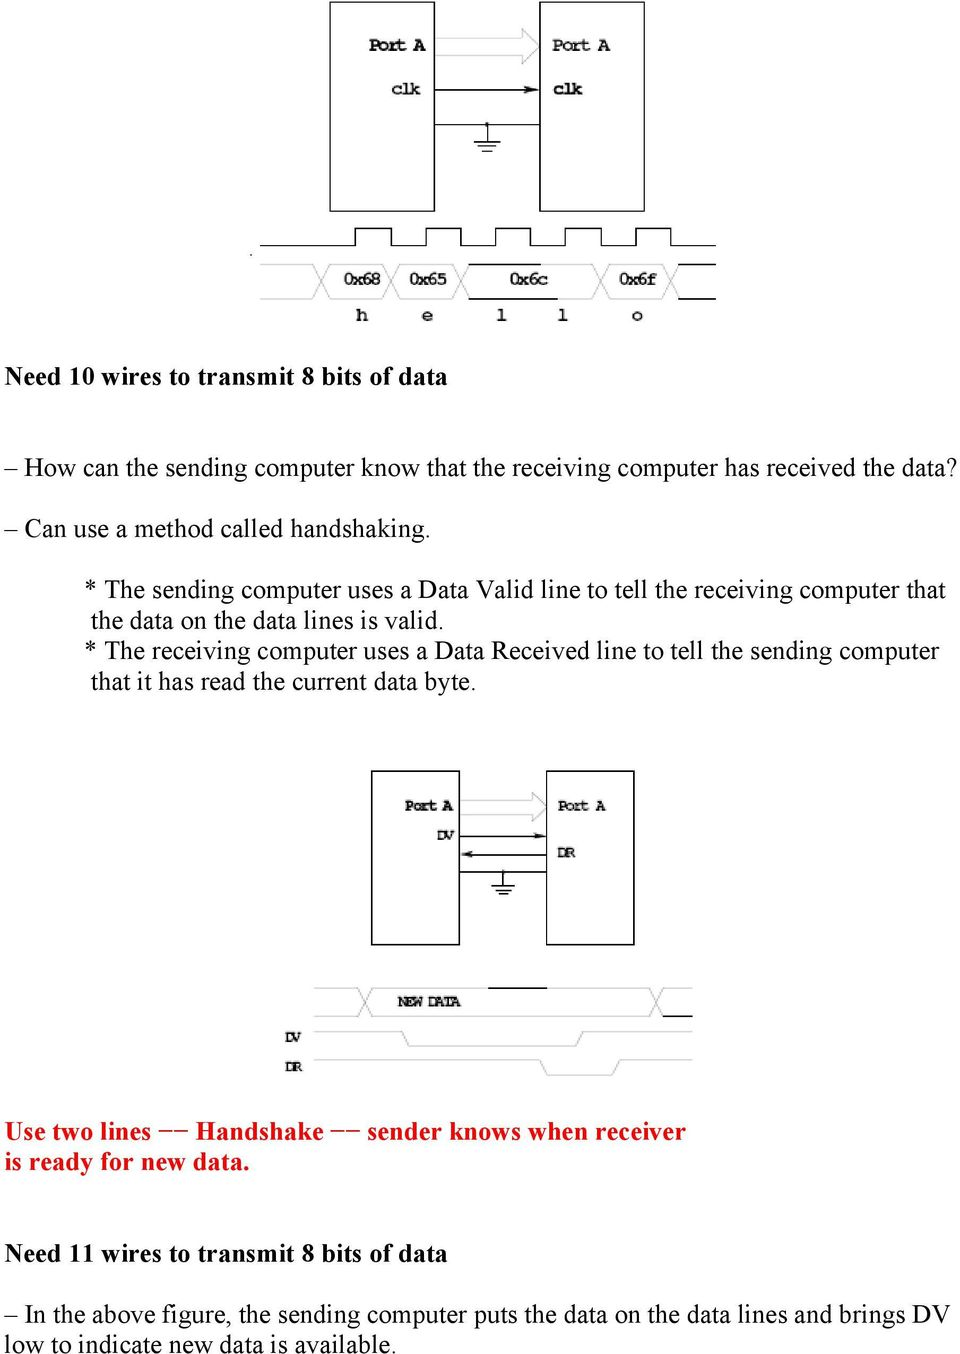 * The receiving computer uses a Data Received line to tell the sending computer that it has read the current data byte.